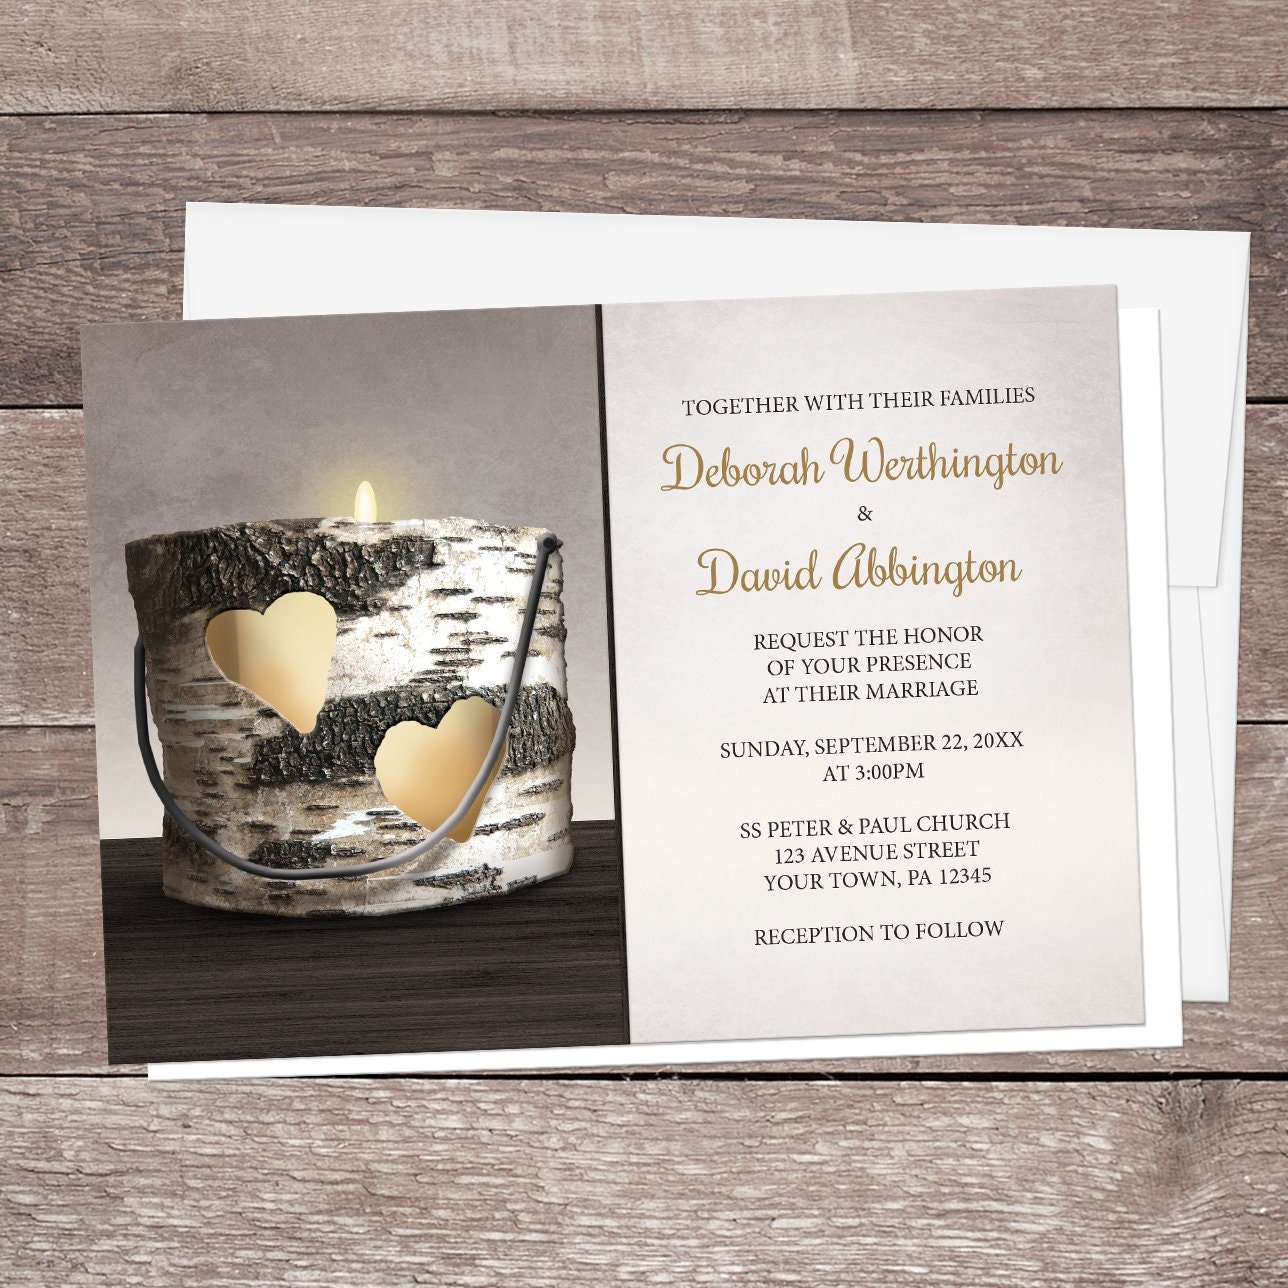 Candlelight Wedding Invitations: Rustic Candle Wedding Invitations And RSVP Cards Country